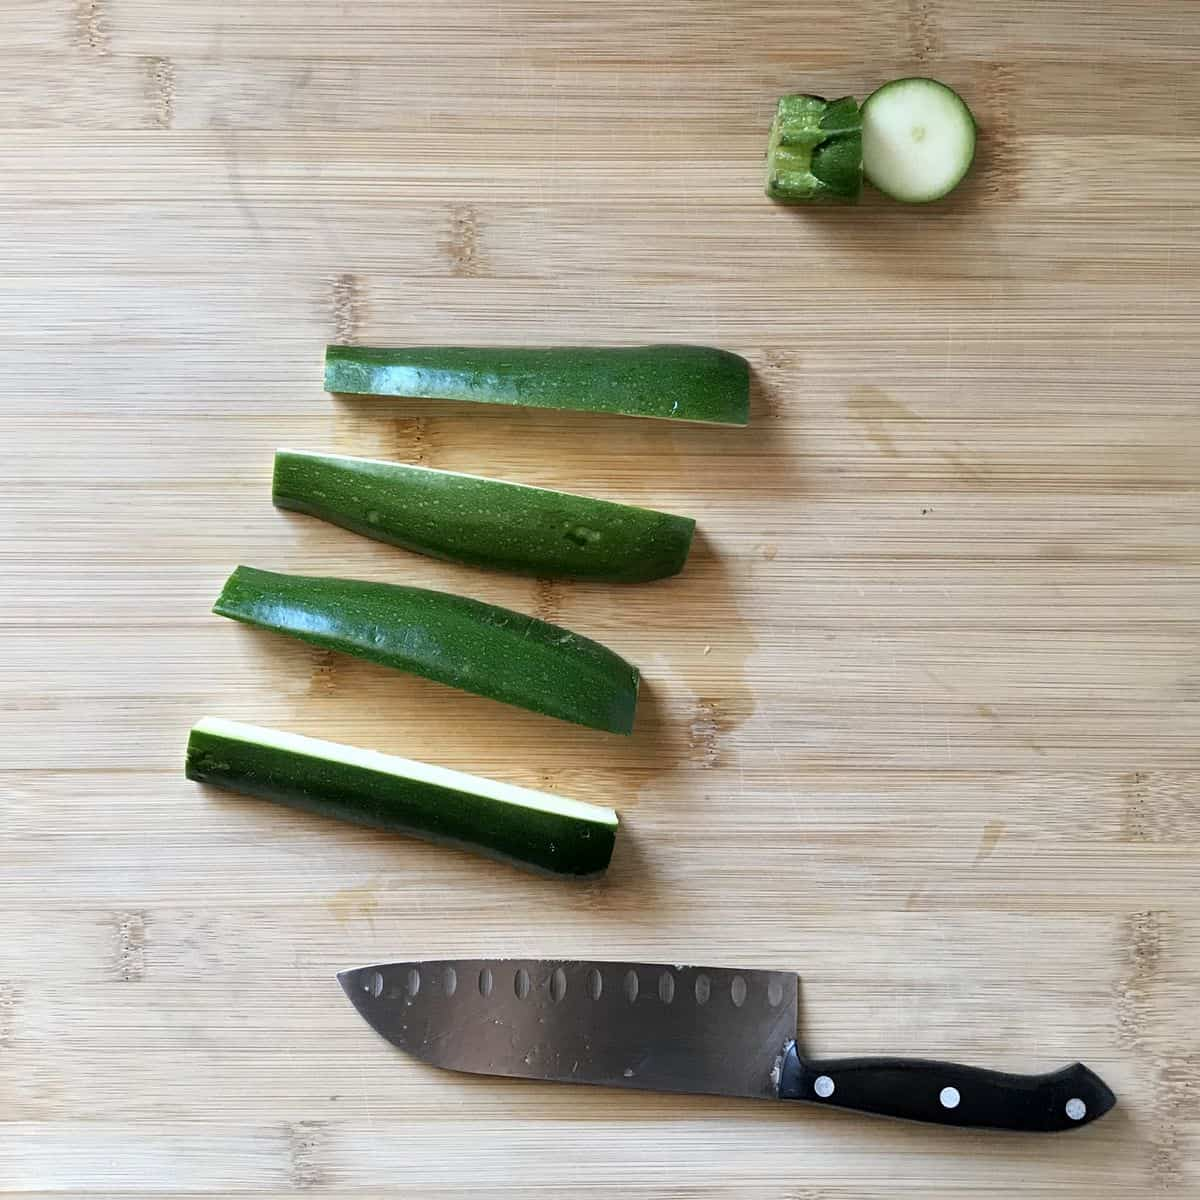 Fresh zucchini next to a knife on a wooden board.